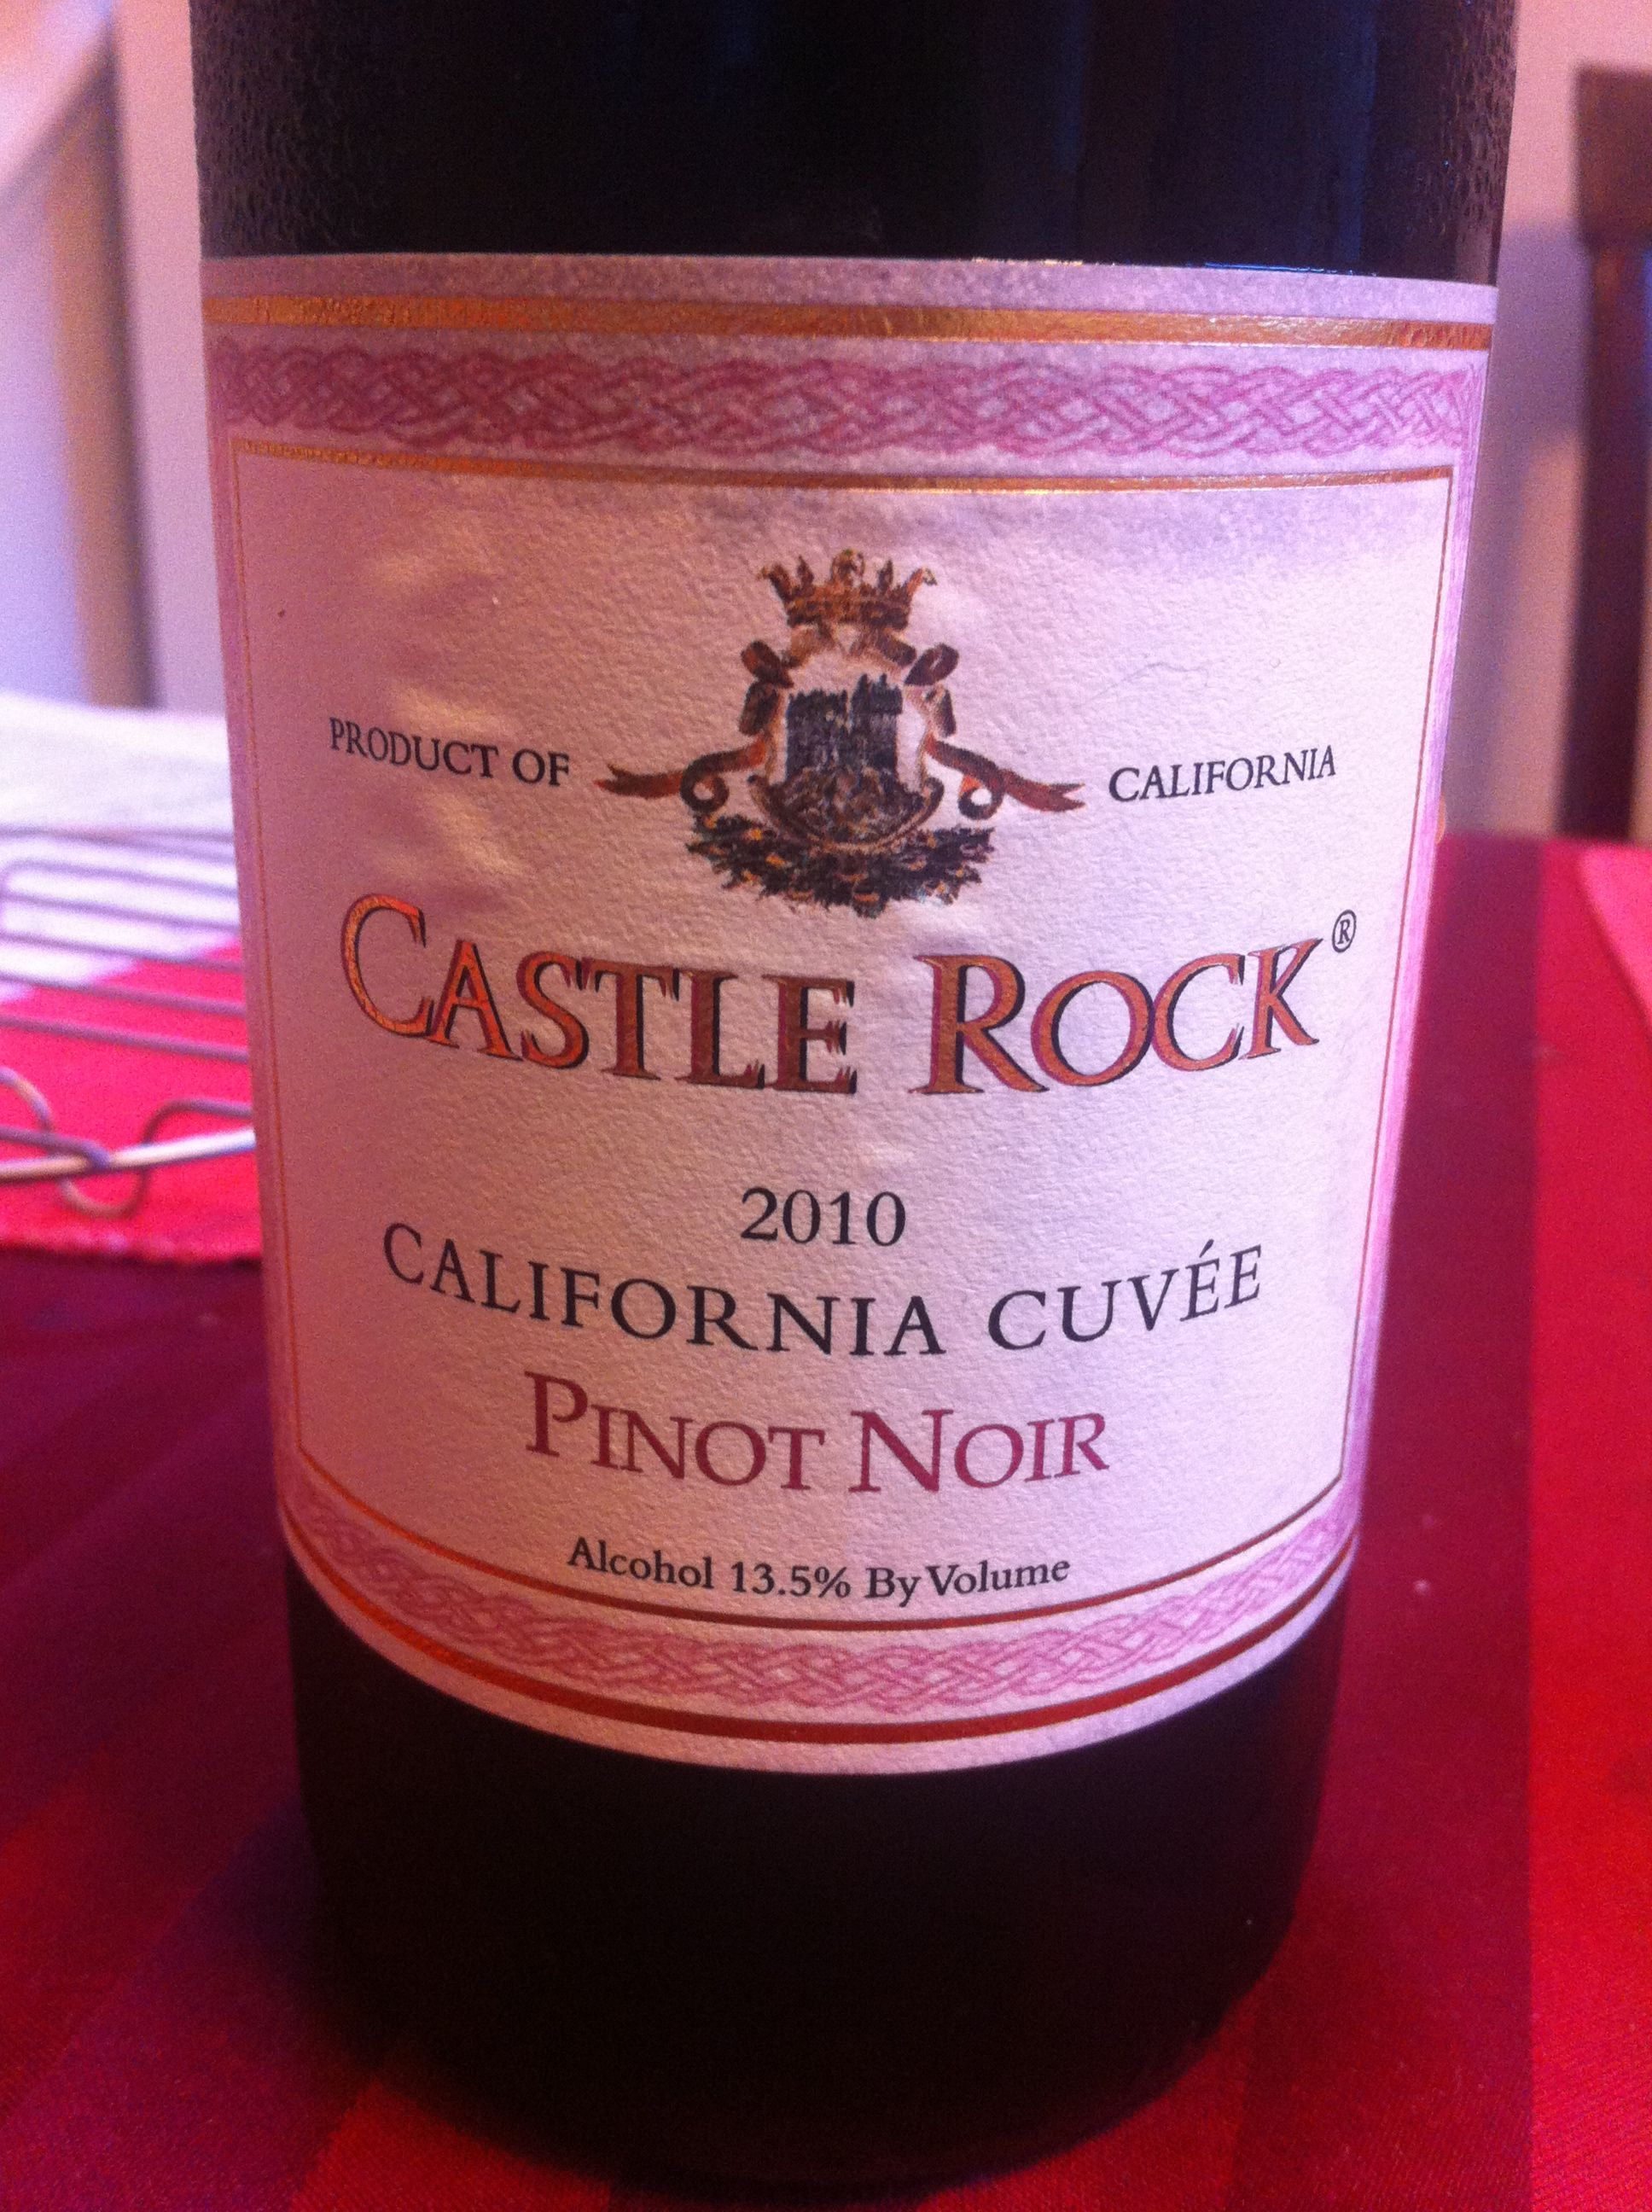 Castle Rock Pinot Noir 10 99 From Whole Foods Hopes Its Good For A Low End Pinot Whole Food Recipes Wines Pinot Noir